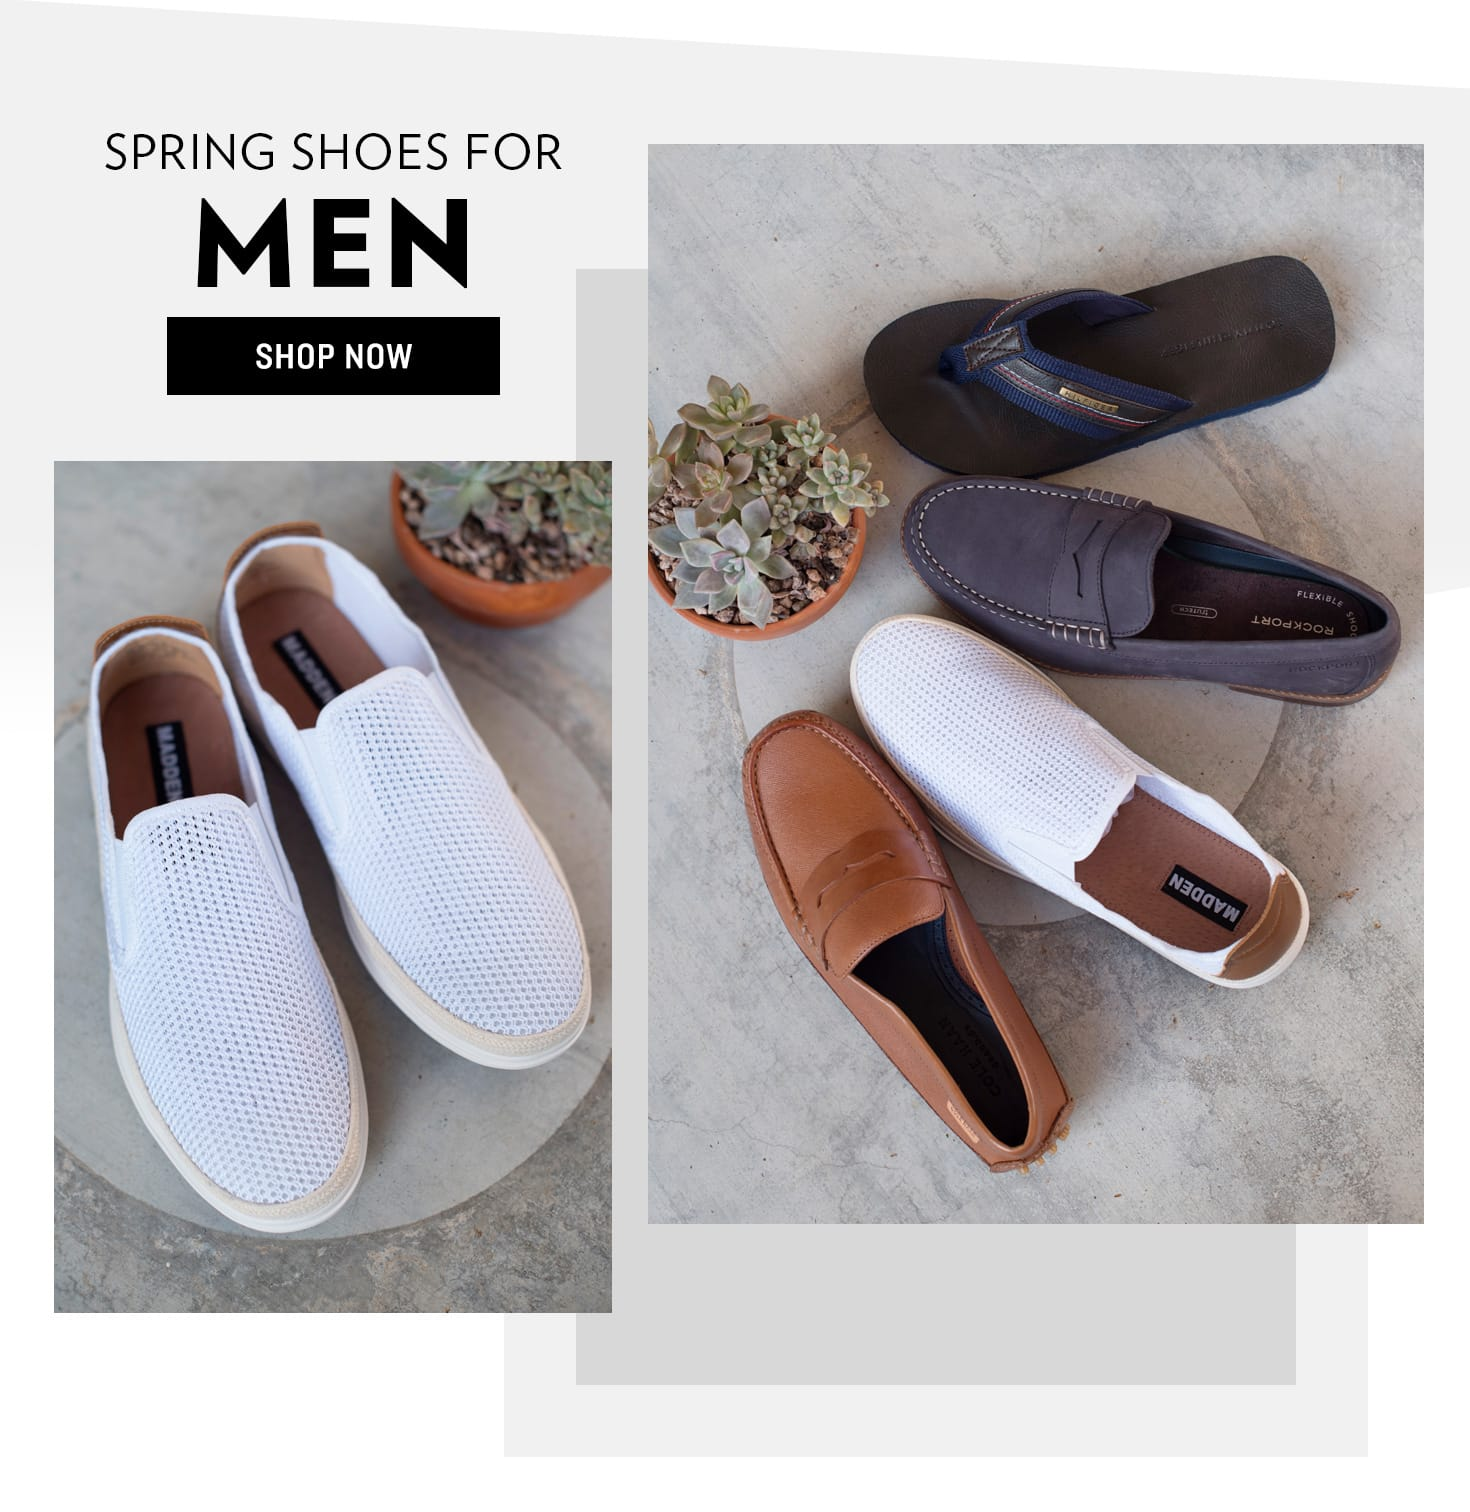 Shop Spring Shoes for Men